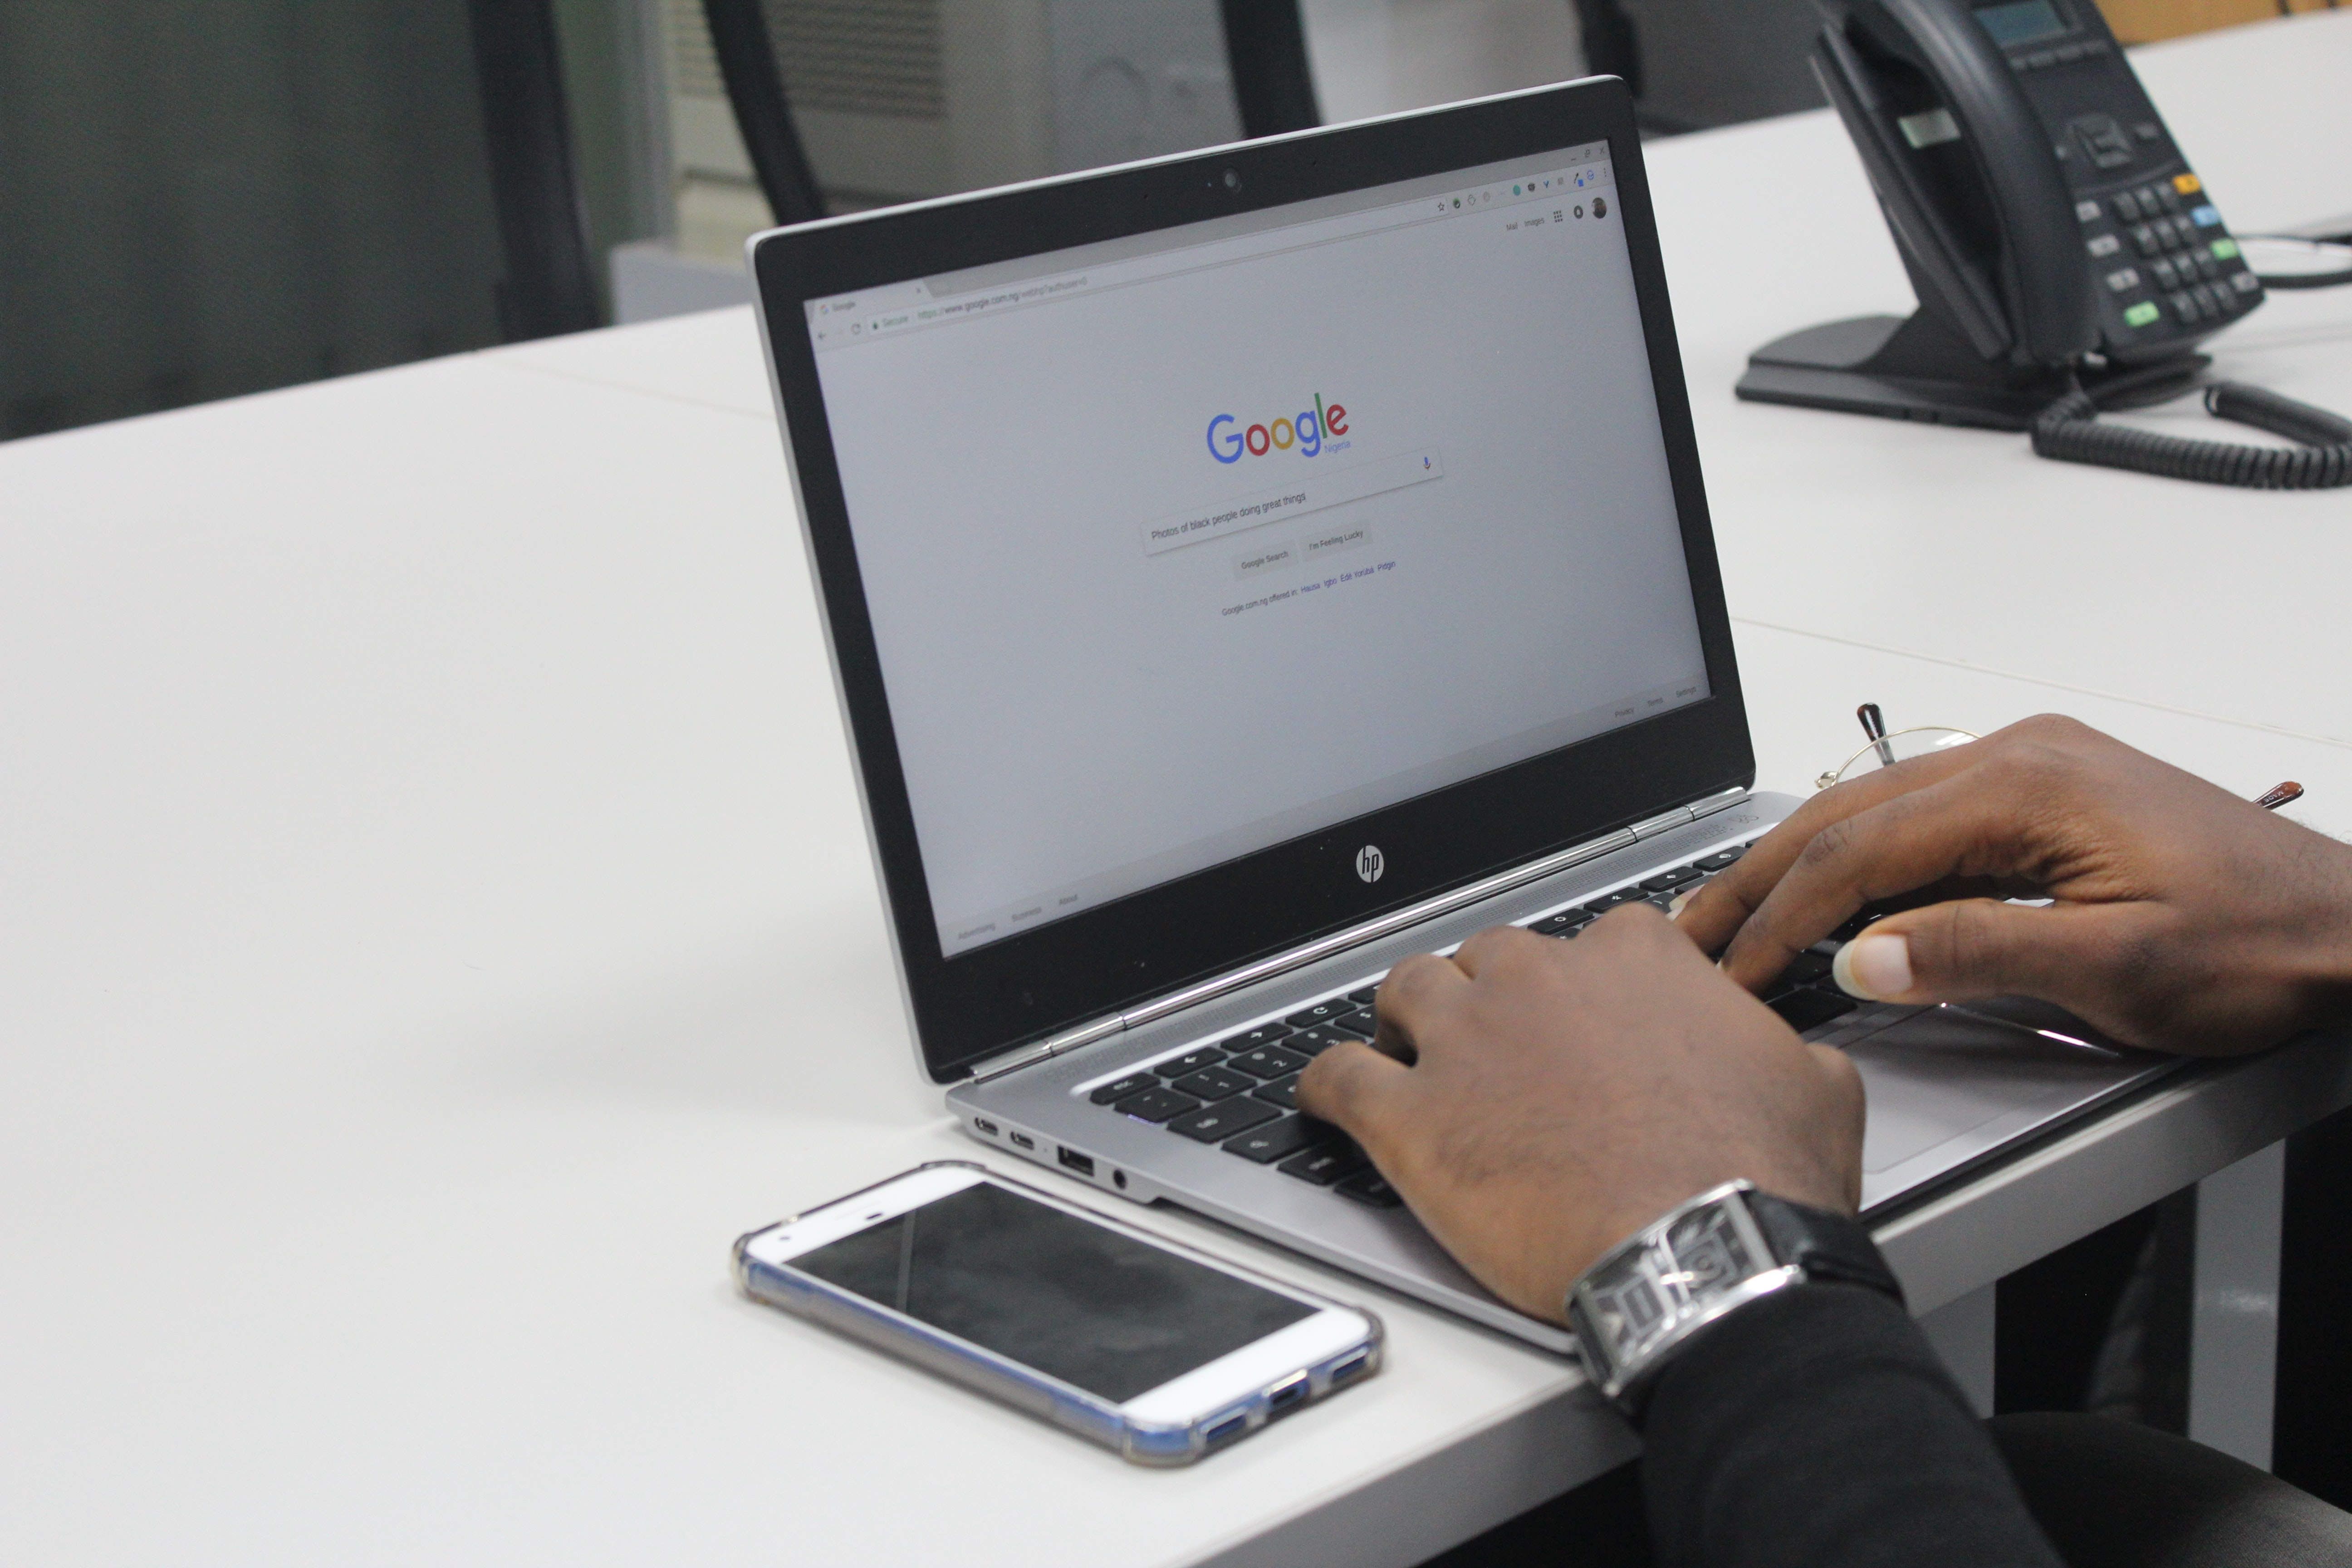 Google search on laptop, SEO to improve customer experience